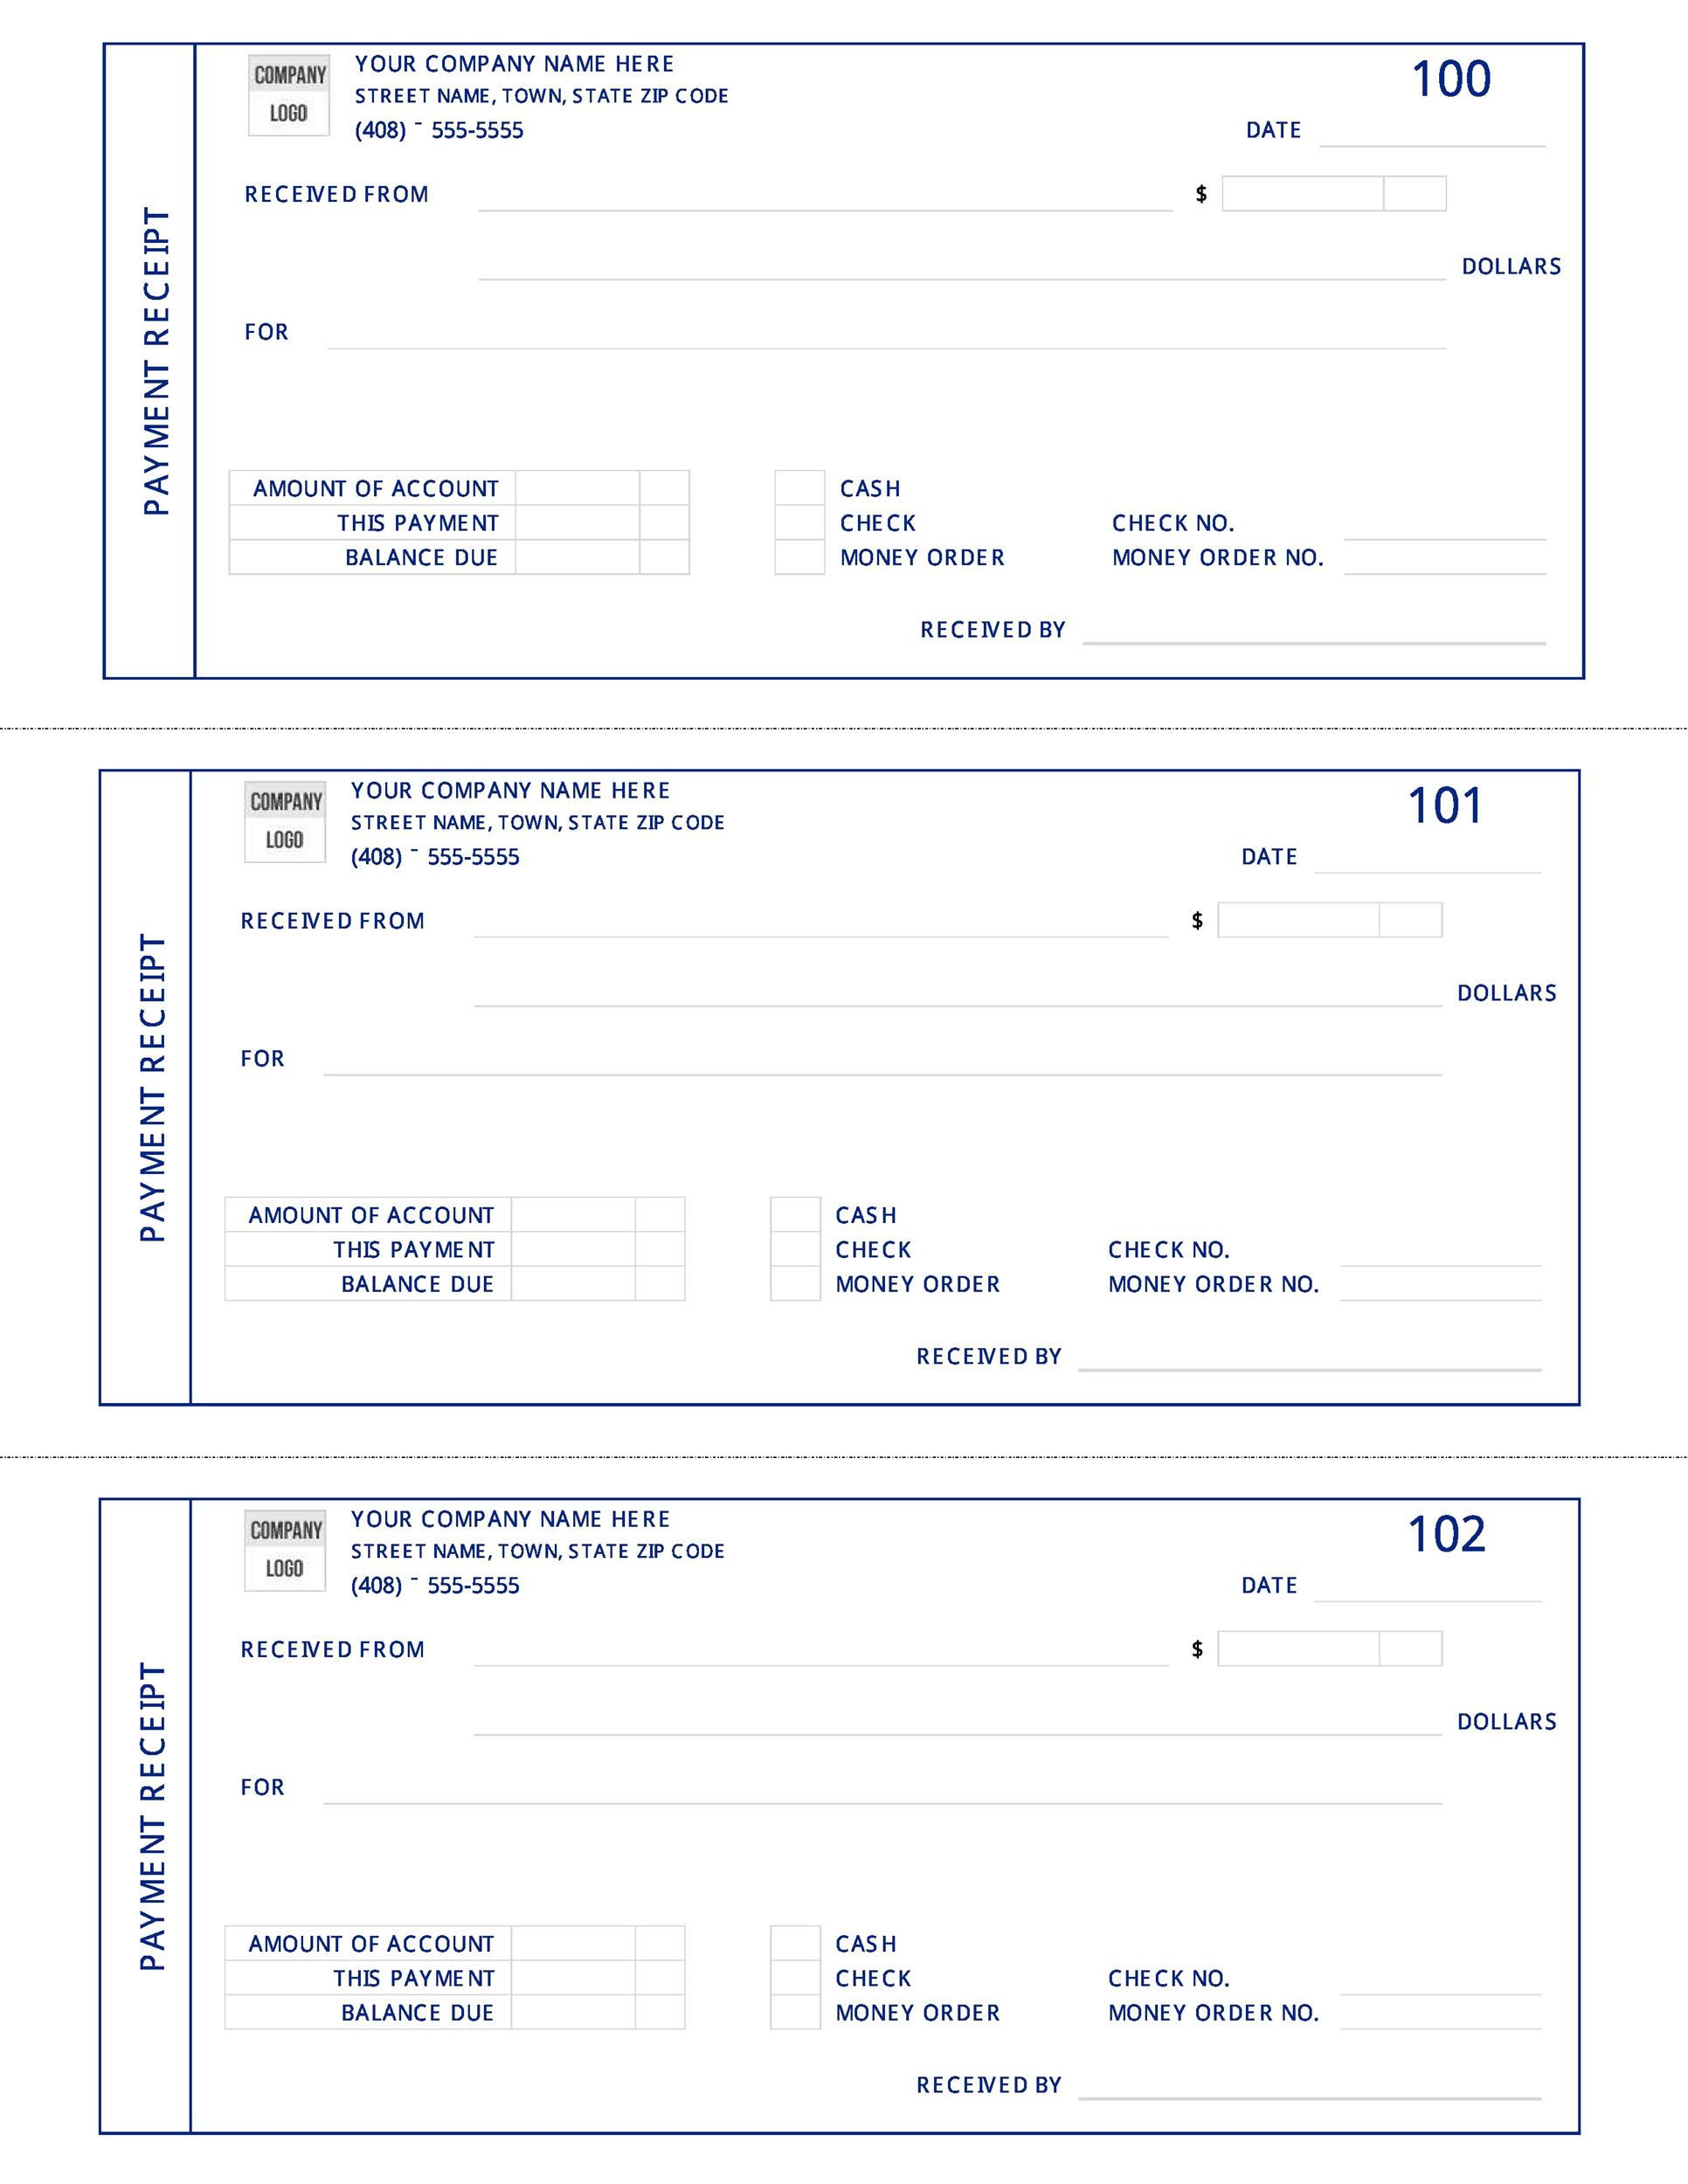 Cash Sale Receipt Template Word from templatelab.com